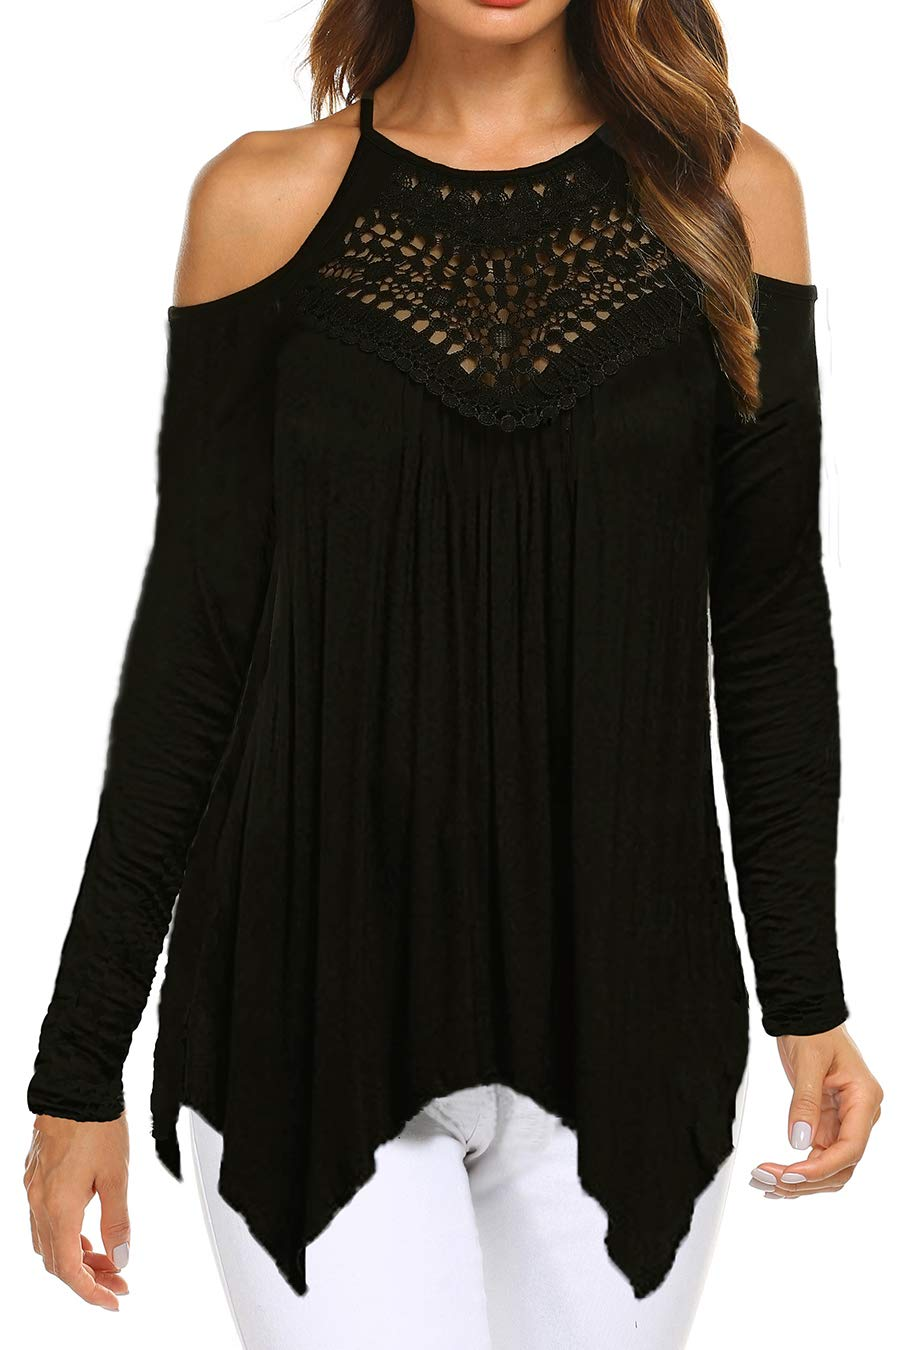 Women's Sexy Lace Neck Cold Shoulder Long Sleeve Loose Blouse Tunic Tops Black M